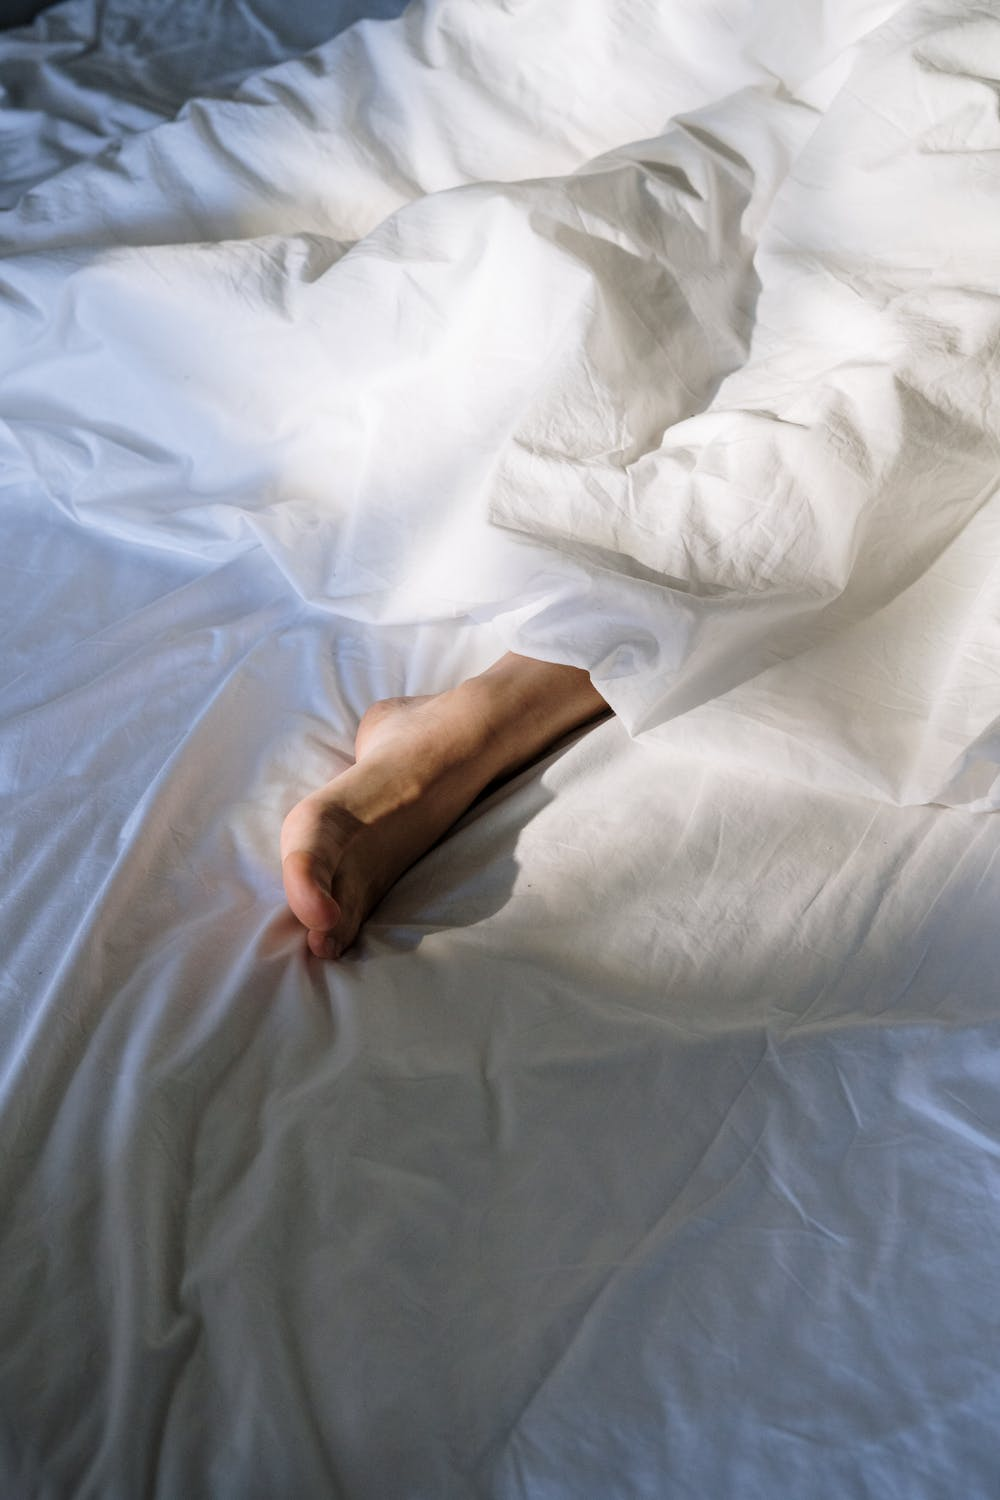 foot poking through the blankets in bed